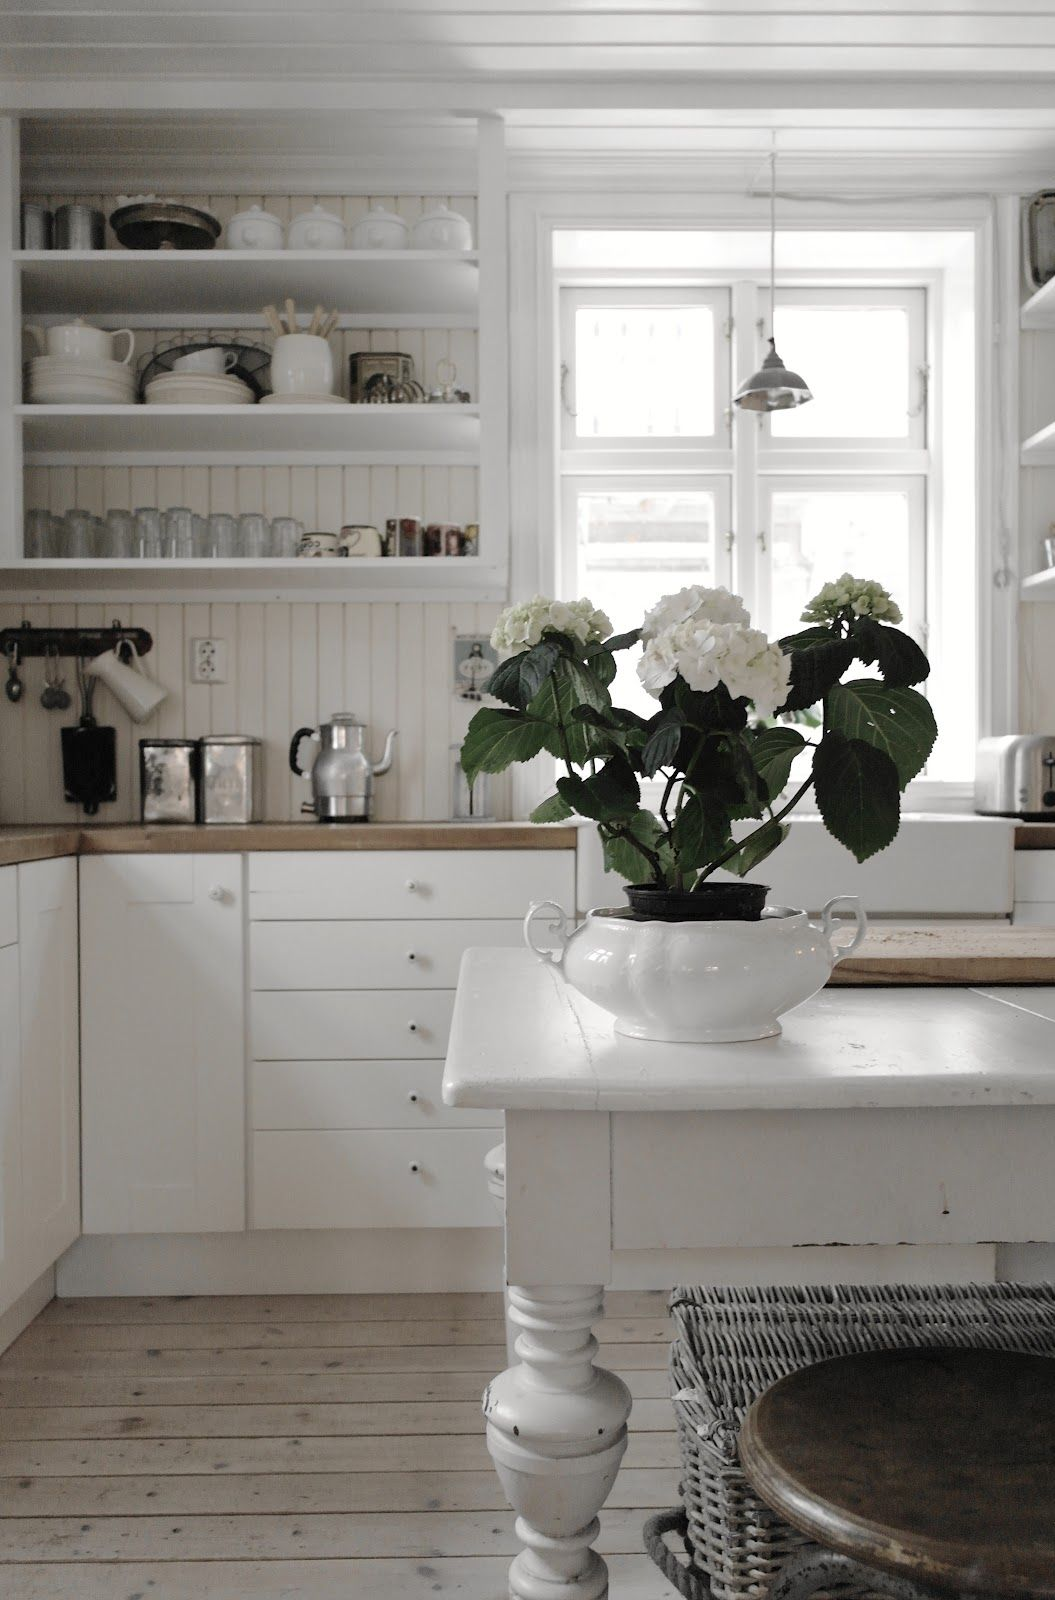 The Benefits Of Open Shelving In The Kitchen: Kitchen #white #decor, I Like The Wood Paneling On The